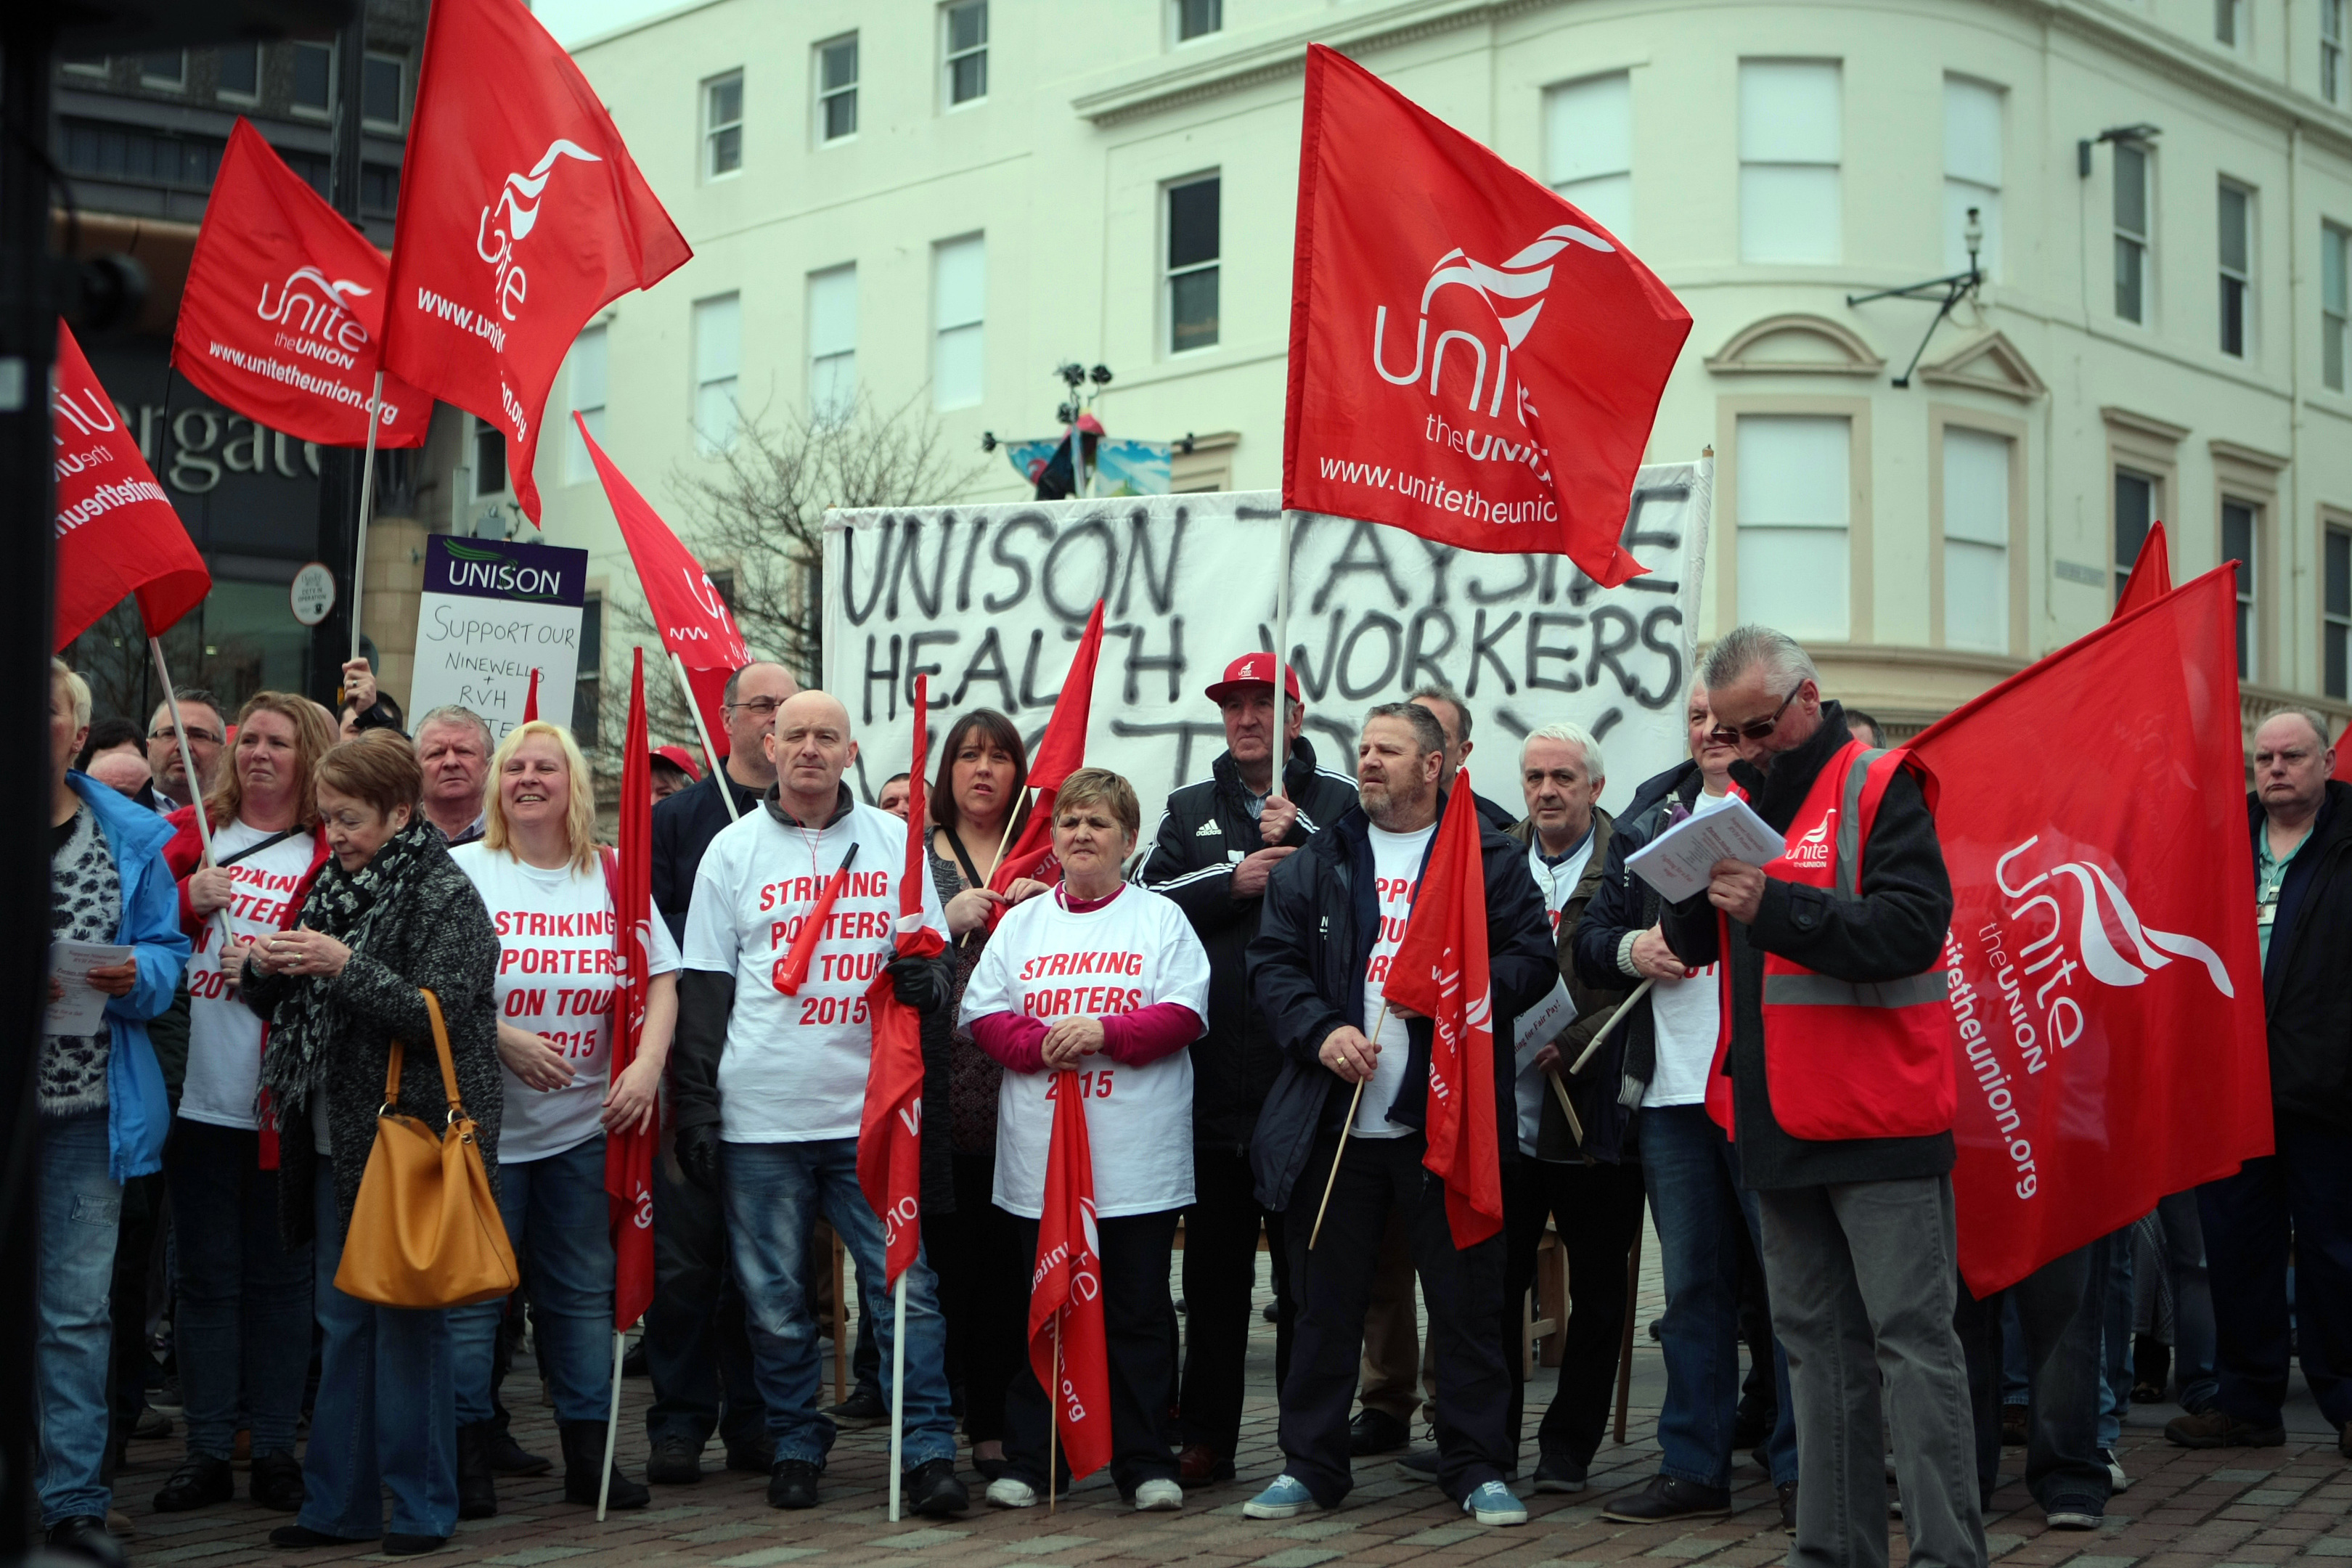 Ninewells Hospital porters holding a rally during their strike in 2015.